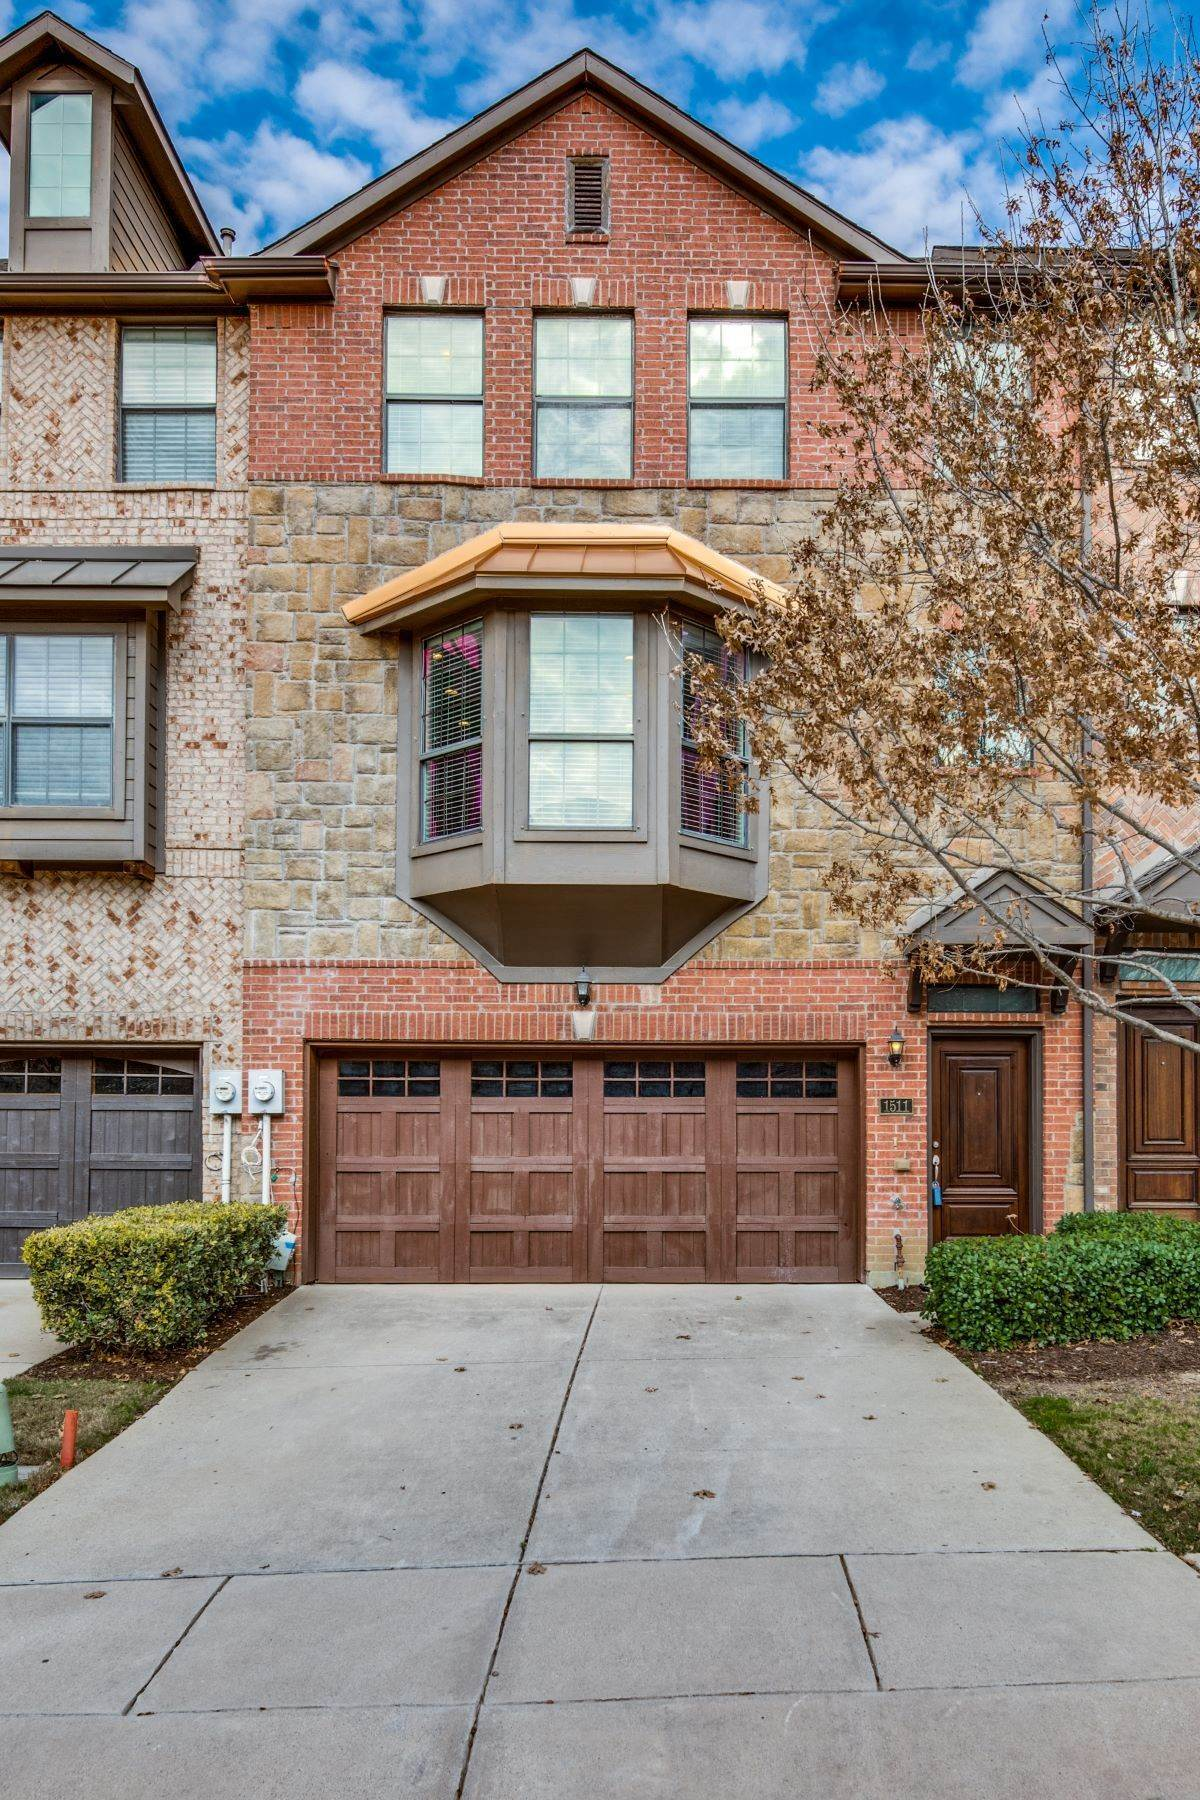 townhouses for Sale at 1511 Biltmore Lane, Irving, TX, 75063 1511 Biltmore Lane Irving, Texas 75063 United States